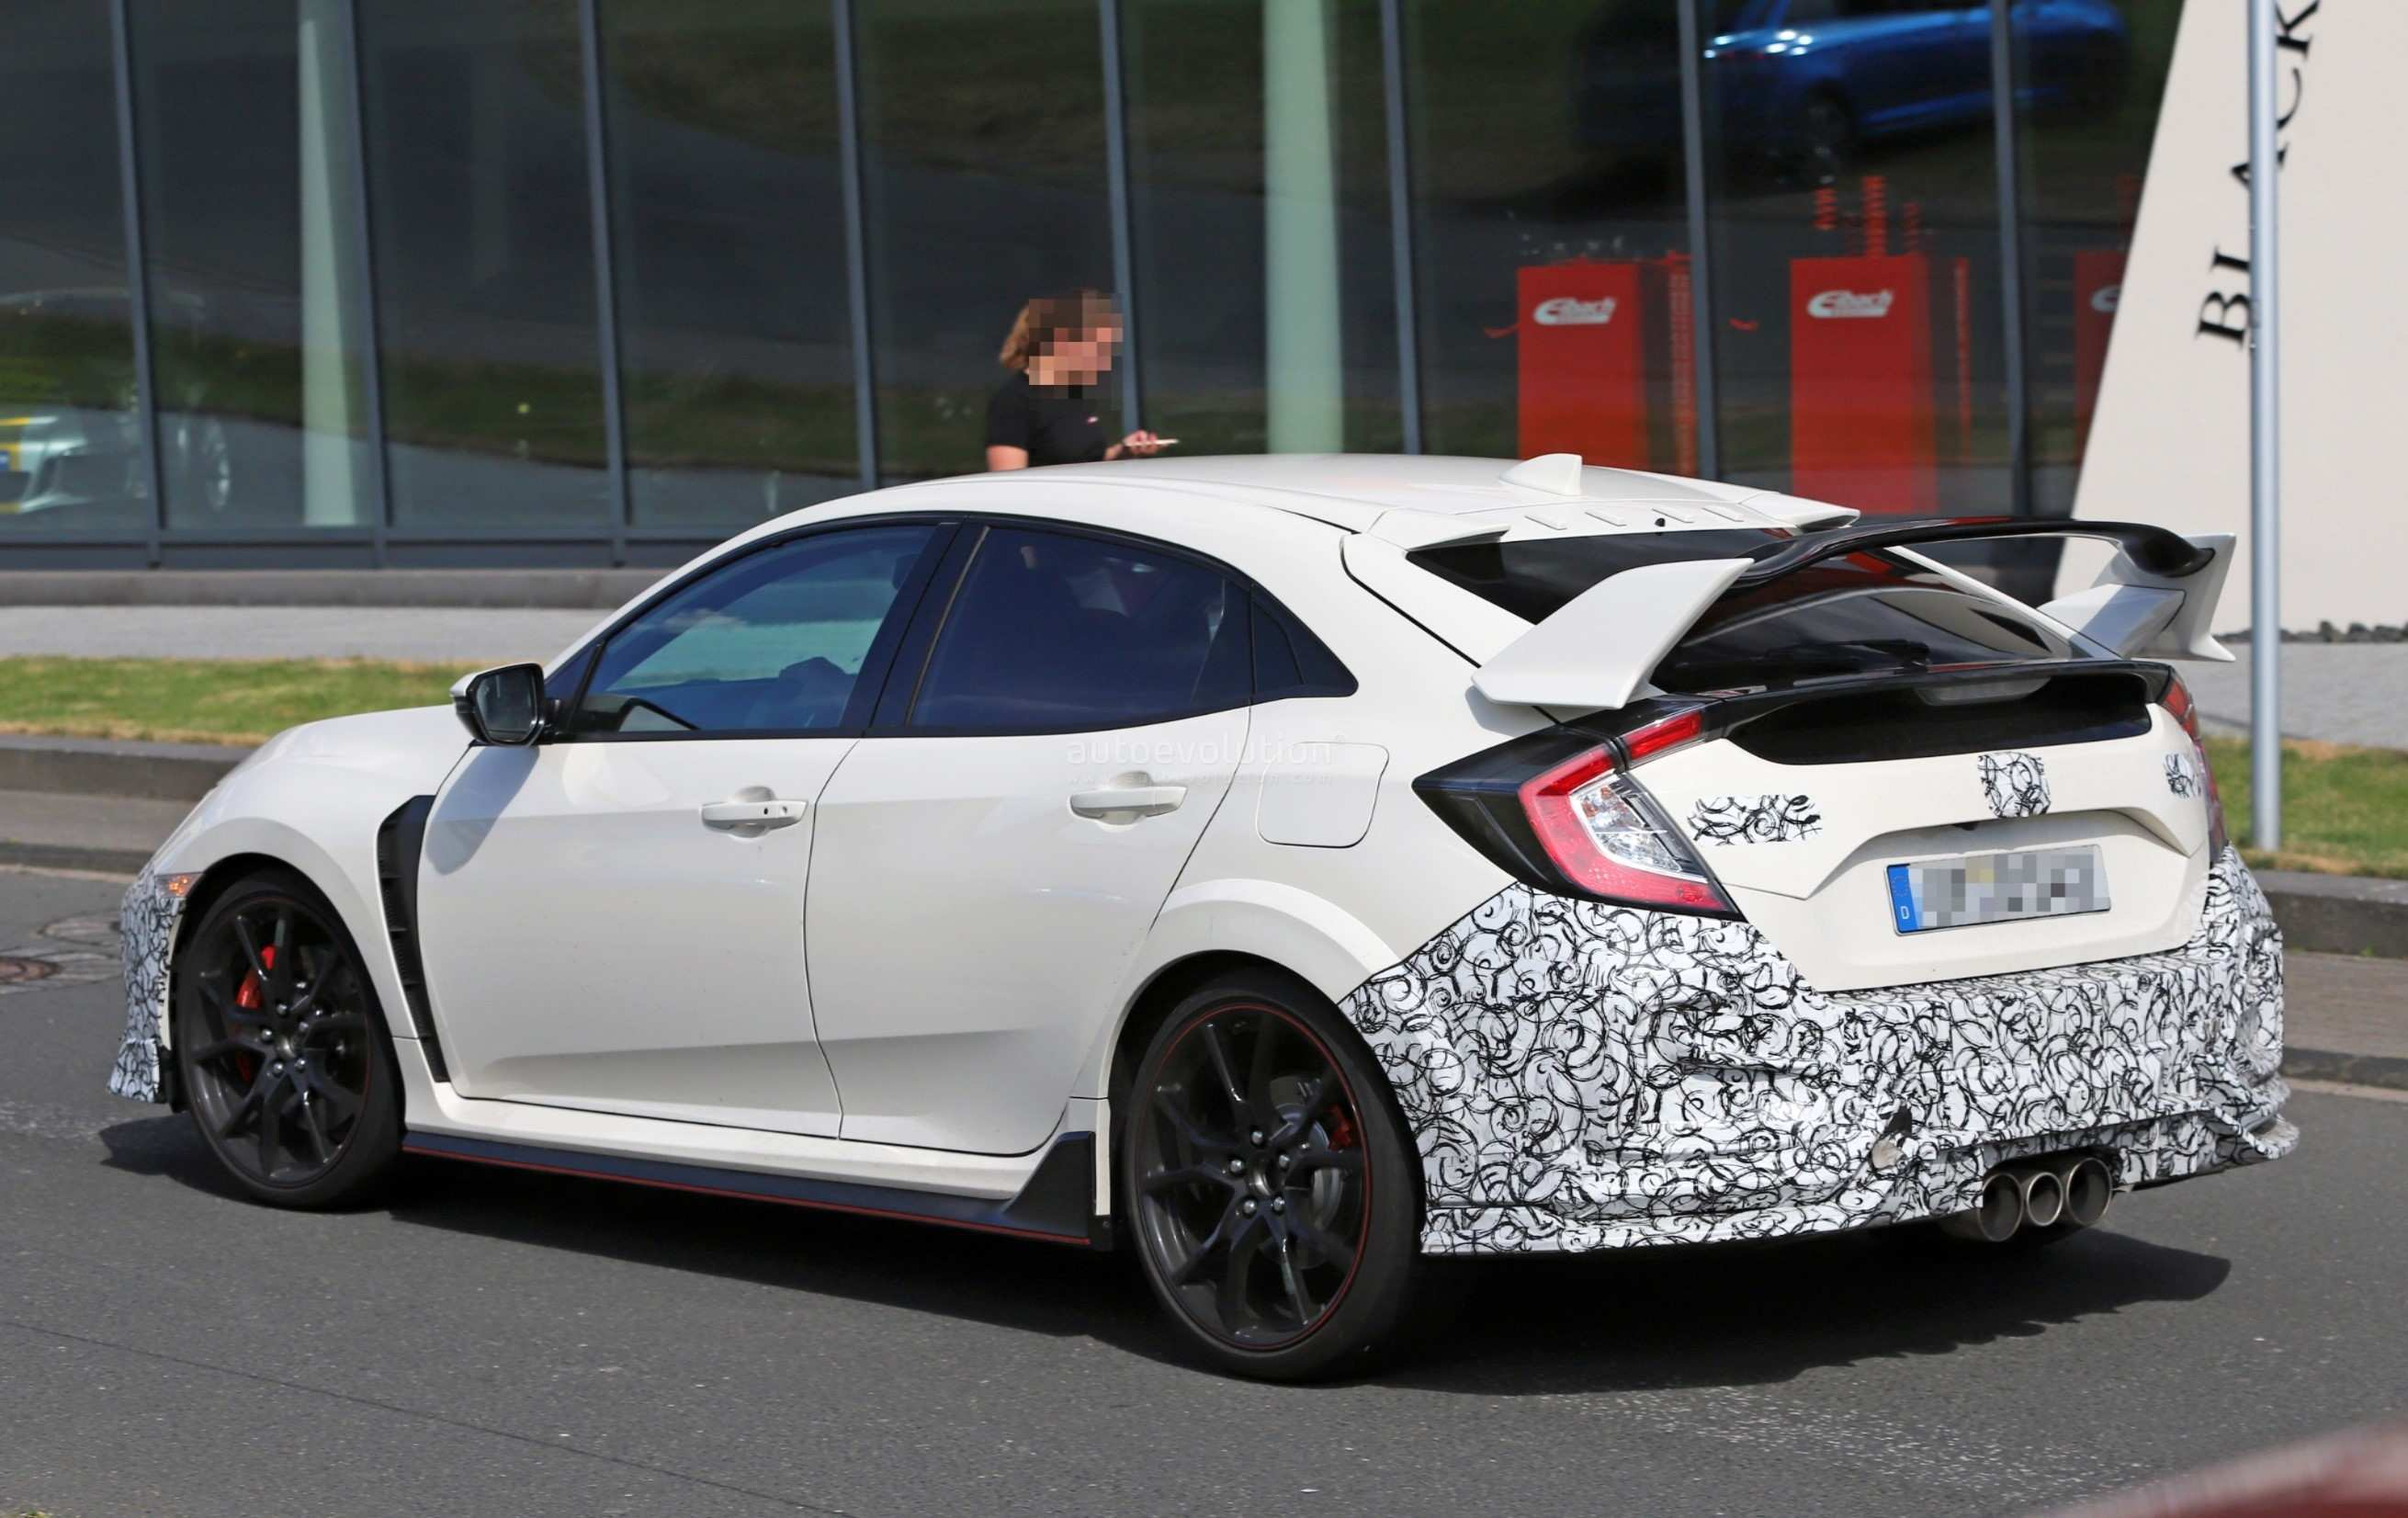 80 Best Review New Honda Type R 2019 Release Date Review And Release Date Pictures for New Honda Type R 2019 Release Date Review And Release Date